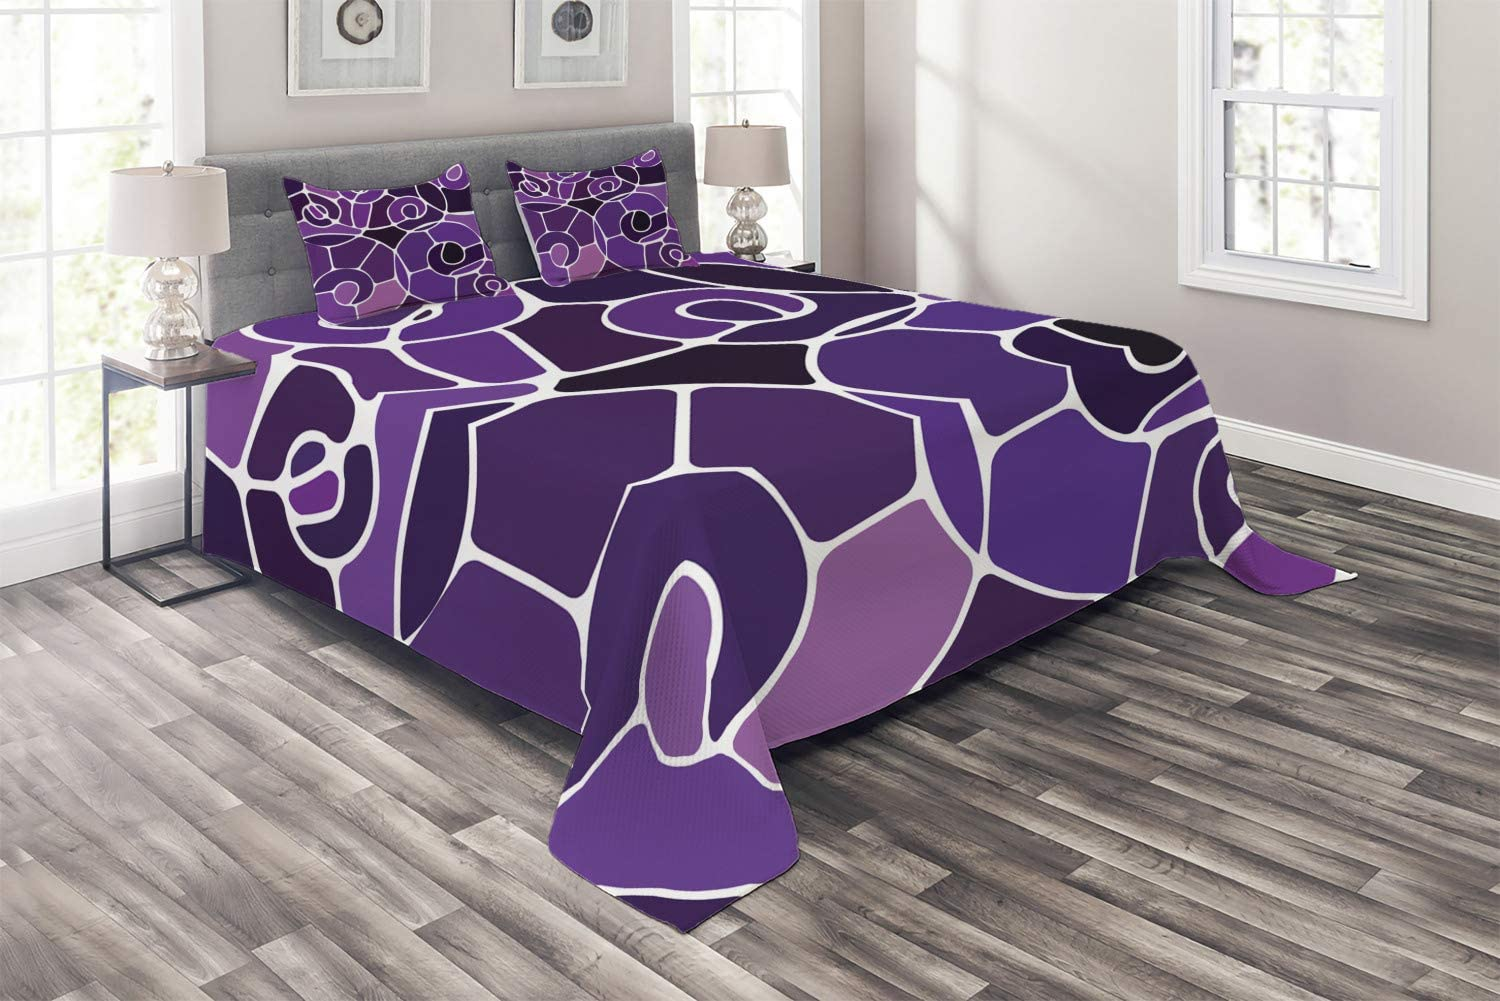 Ambesonne Modern Coverlet, Spiral Shapes of Bold Blocks in Different Purple Shades Graphic Abstract Arrangement, 3 Piece Decorative Quilted Bedspread Set with 2 Pillow Shams, Queen Size, Purple